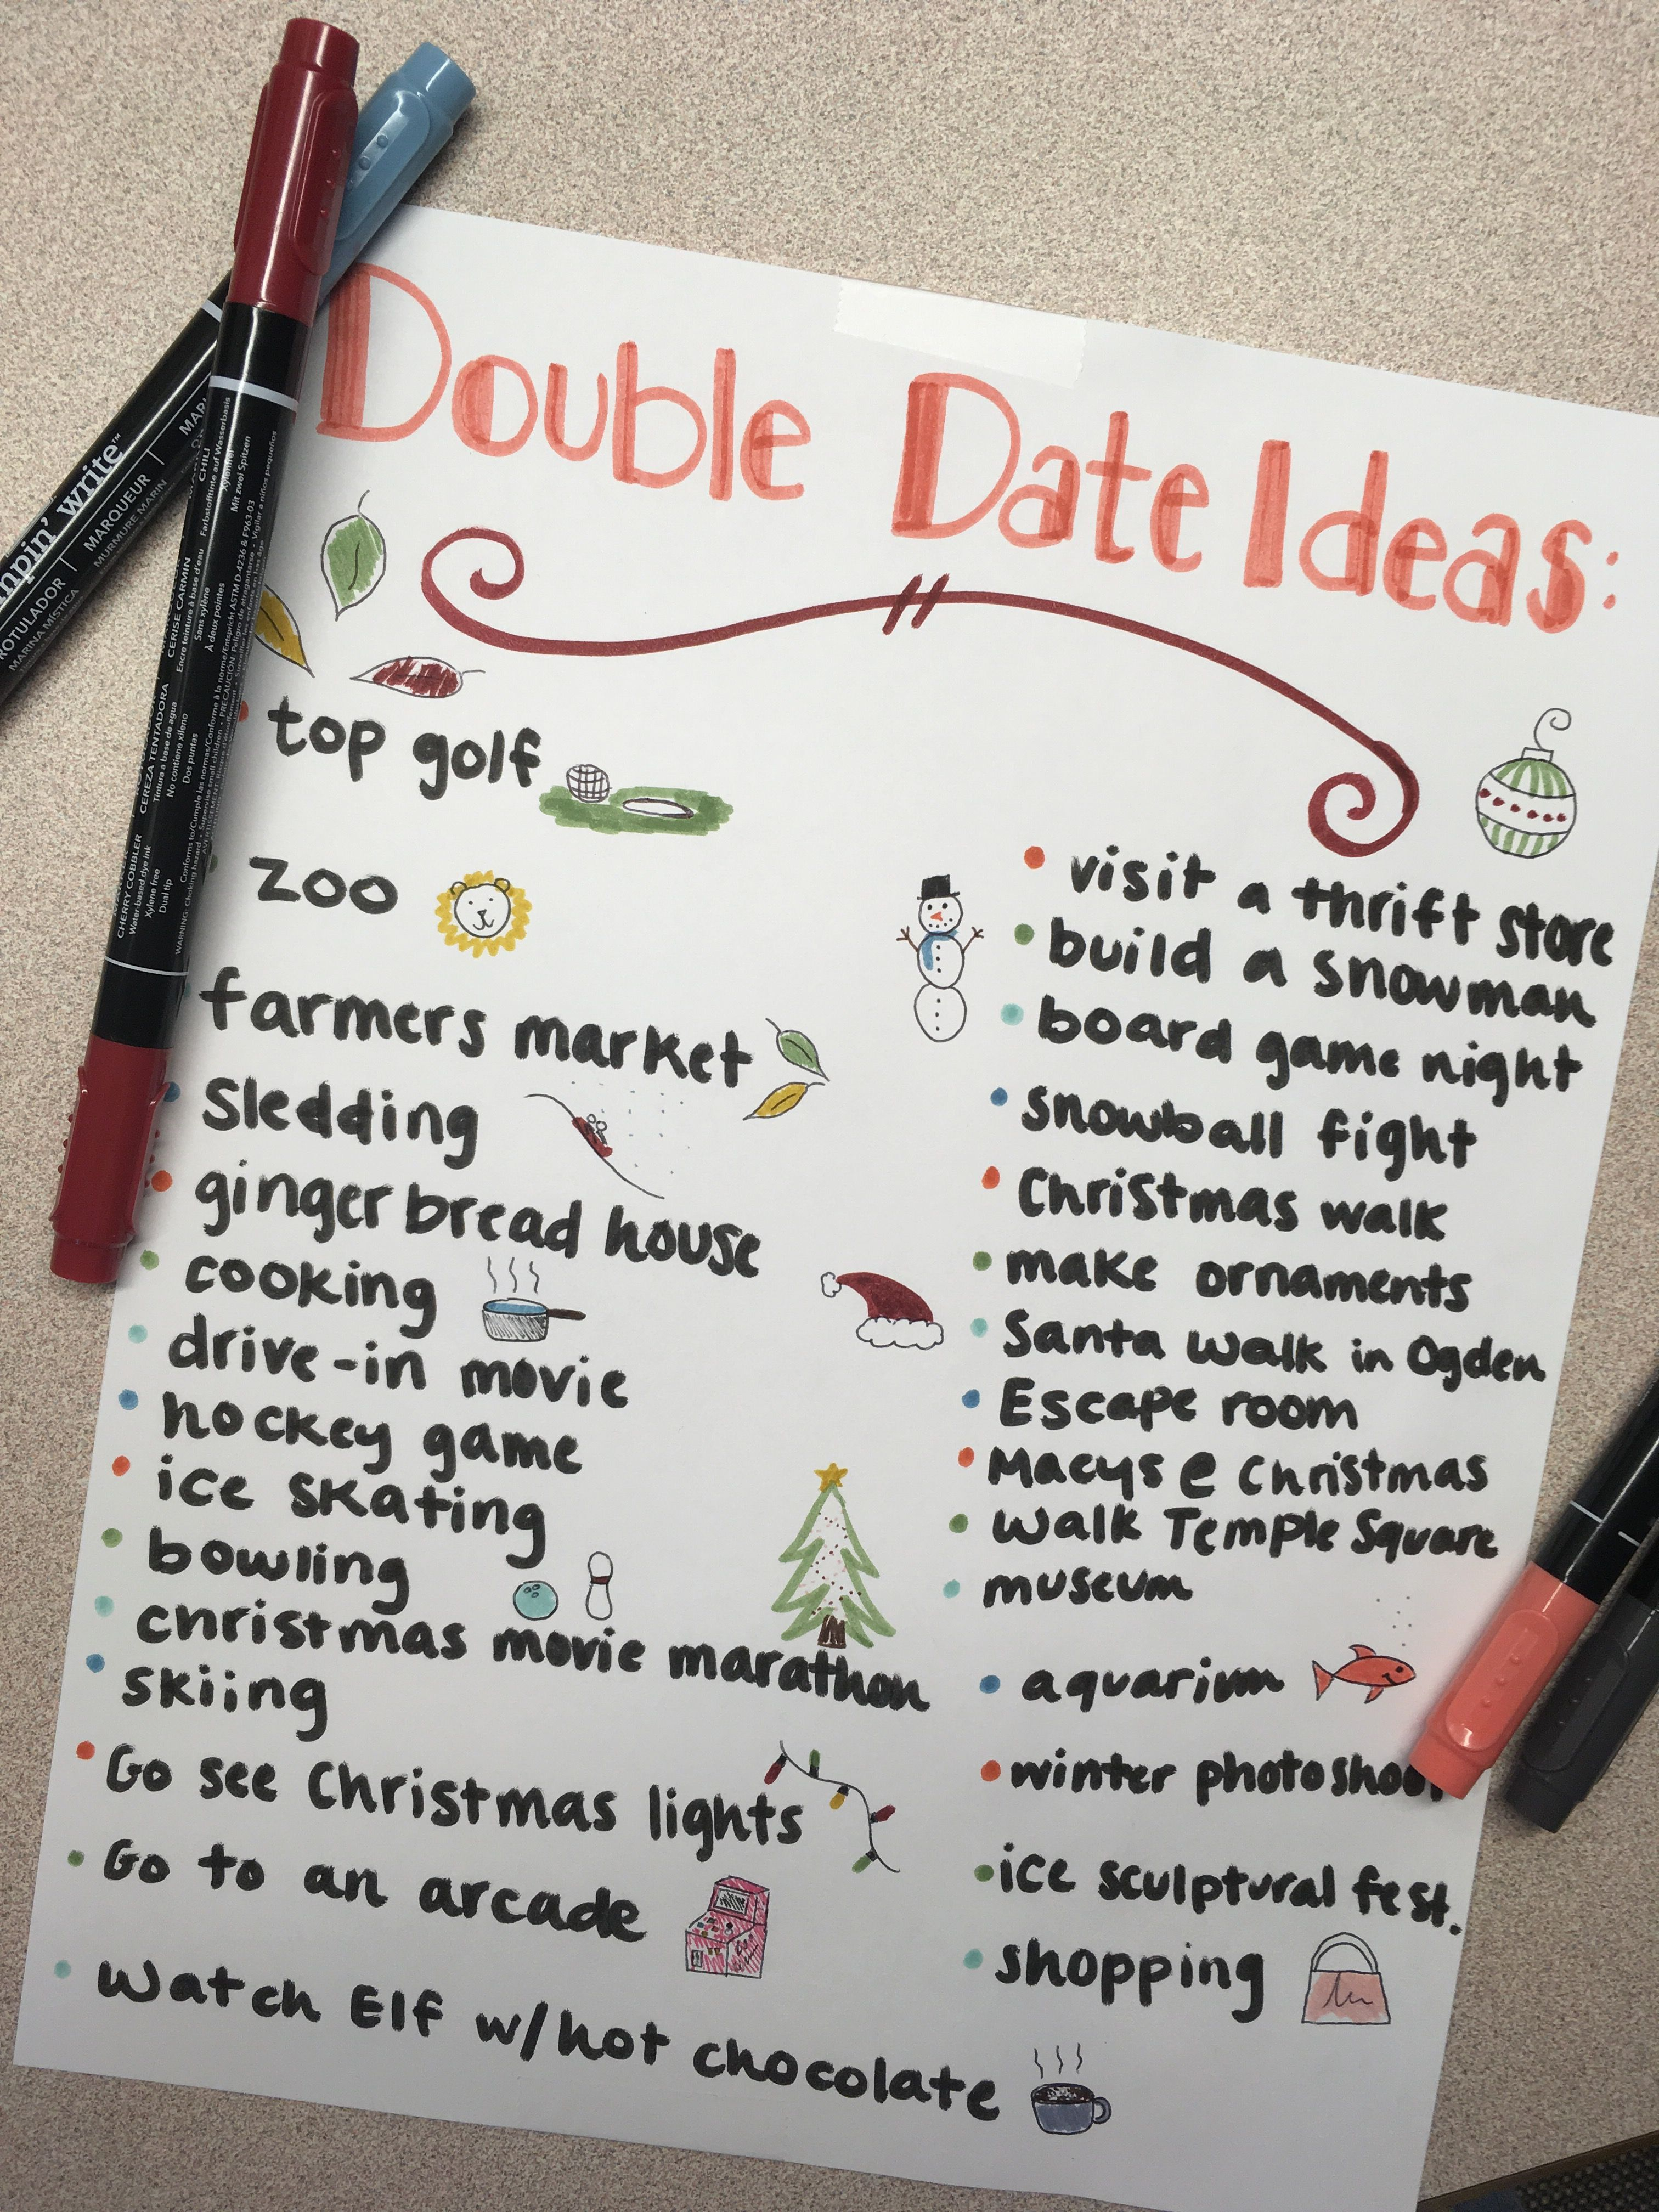 Double date ideas for fall/winter | Date Ideas | Pinterest | Fall ...